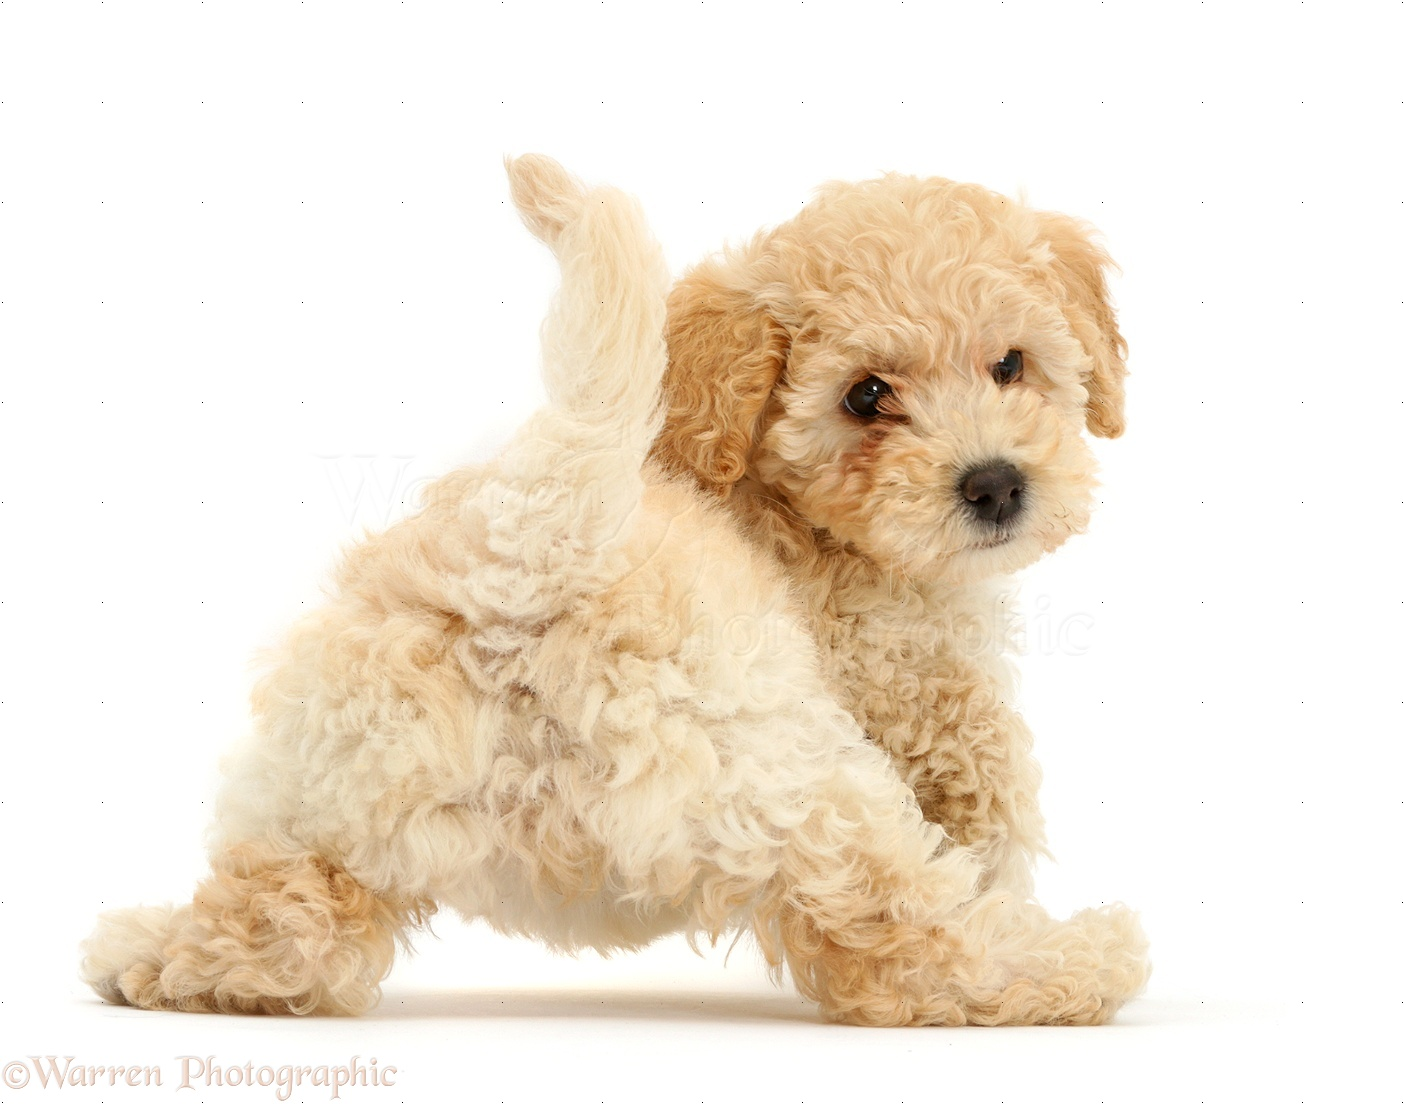 Dog: Cute playful Poochon puppy, 6 weeks old photo WP41602